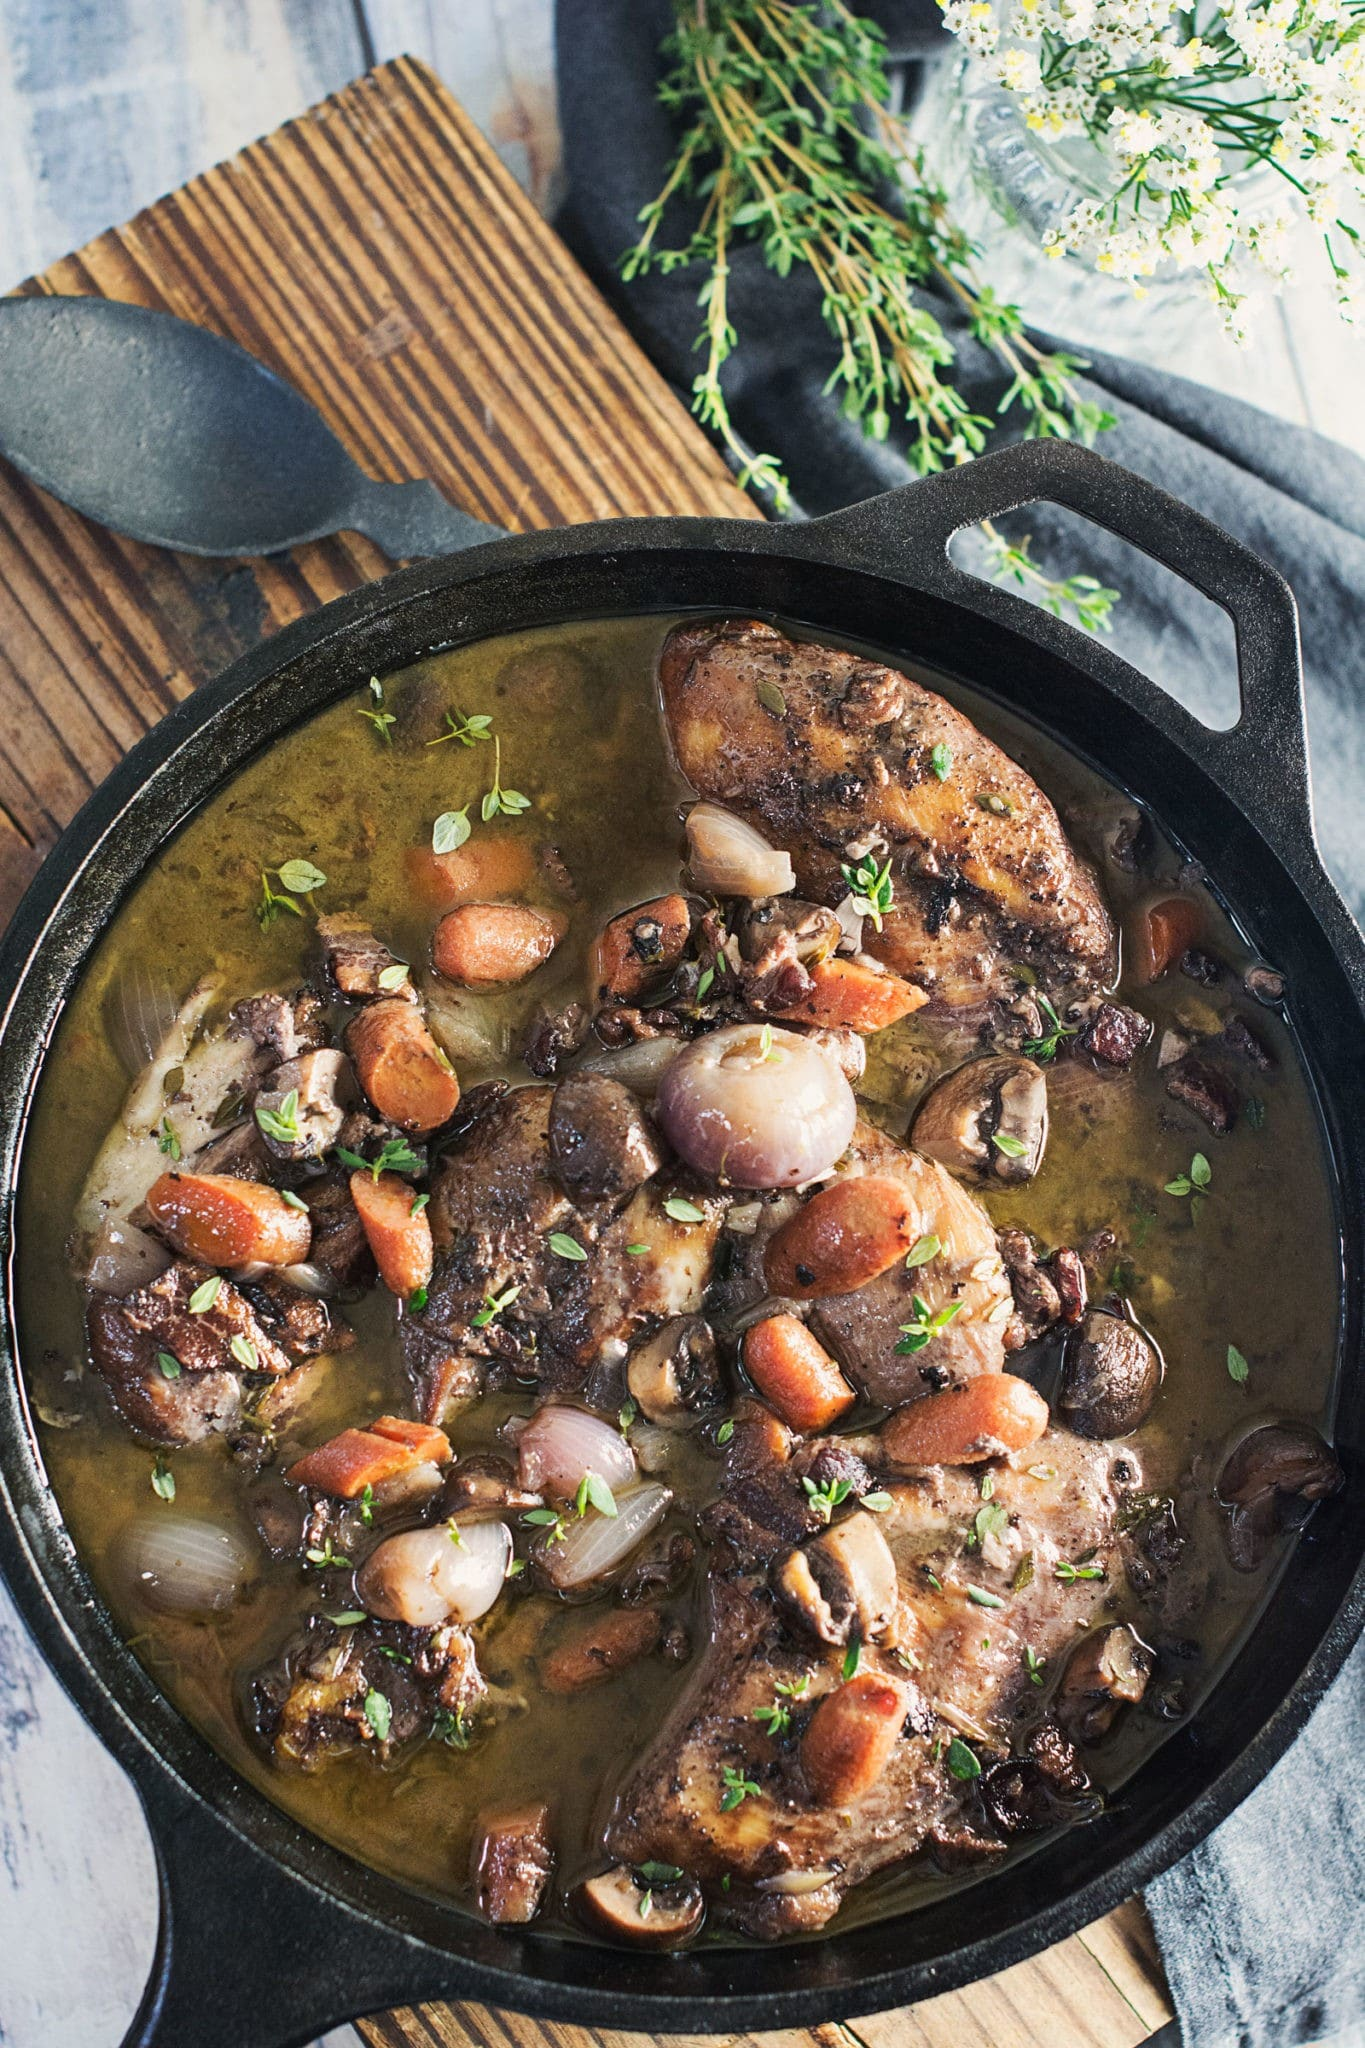 Enjoy this warming Coq au Vin, a French Chicken stew with an incredible red wine soup base! Recipe @LittleFiggyFood